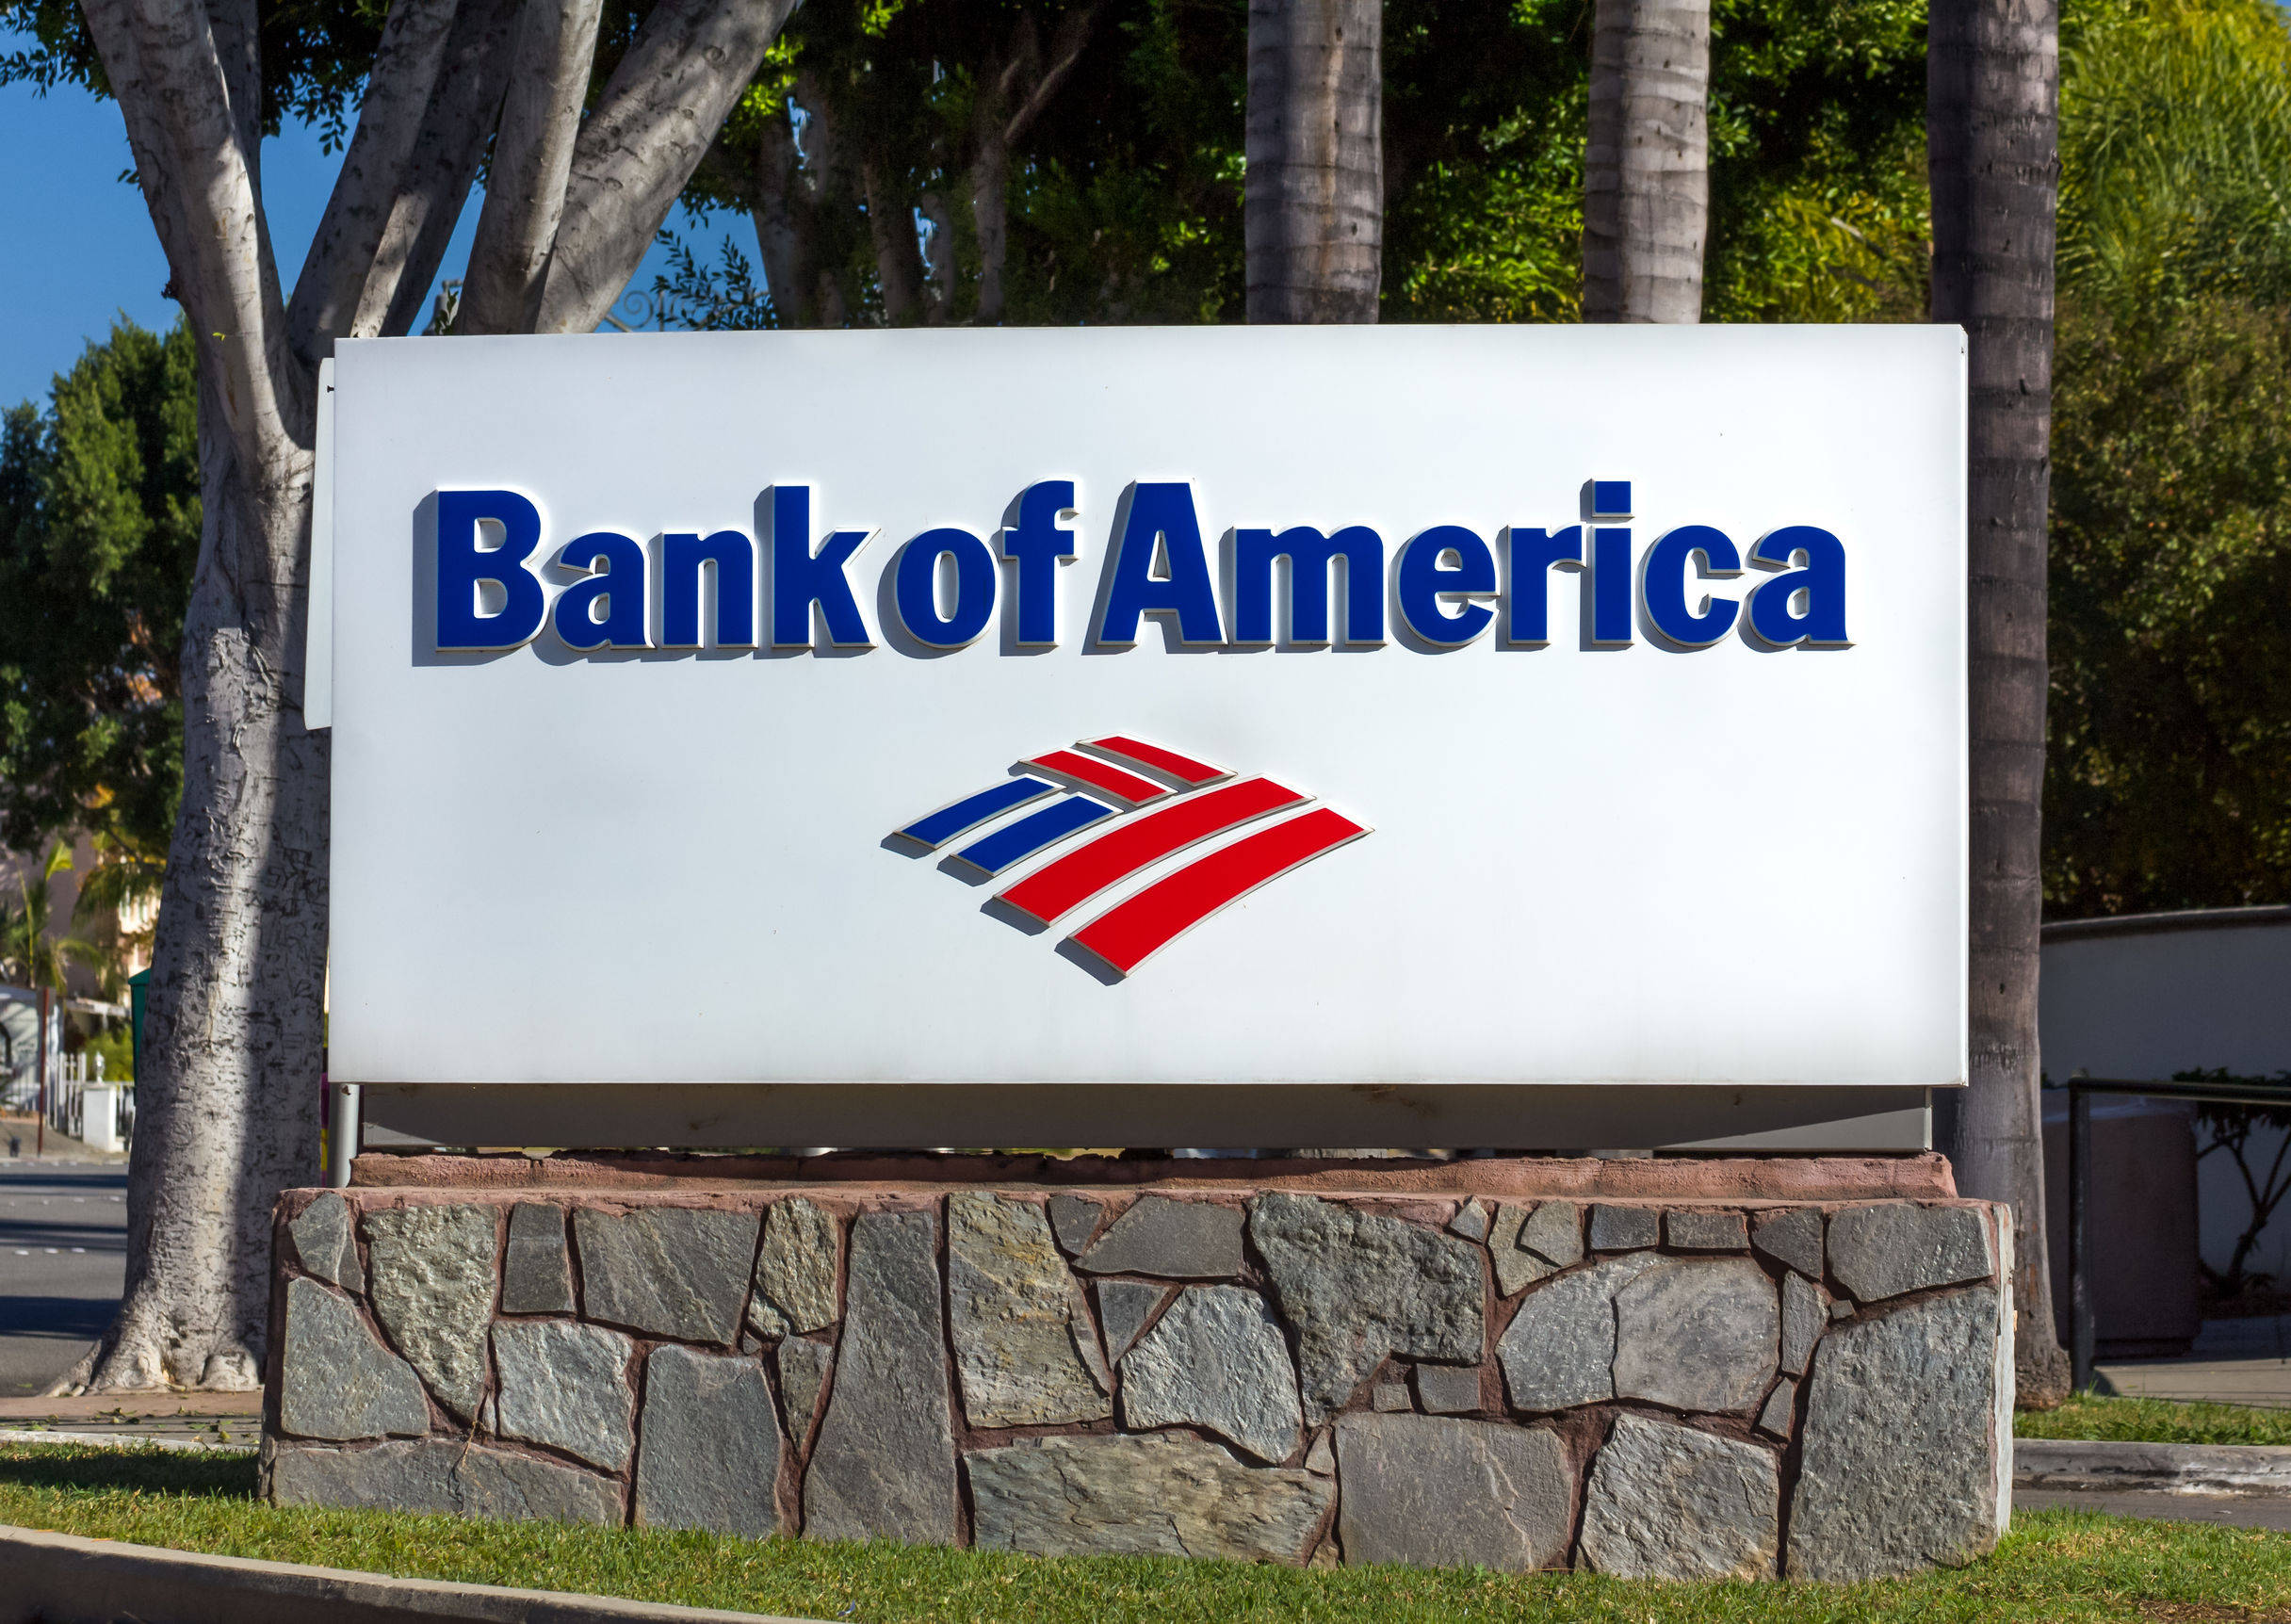 Bank of America Supports Economic Opportunity